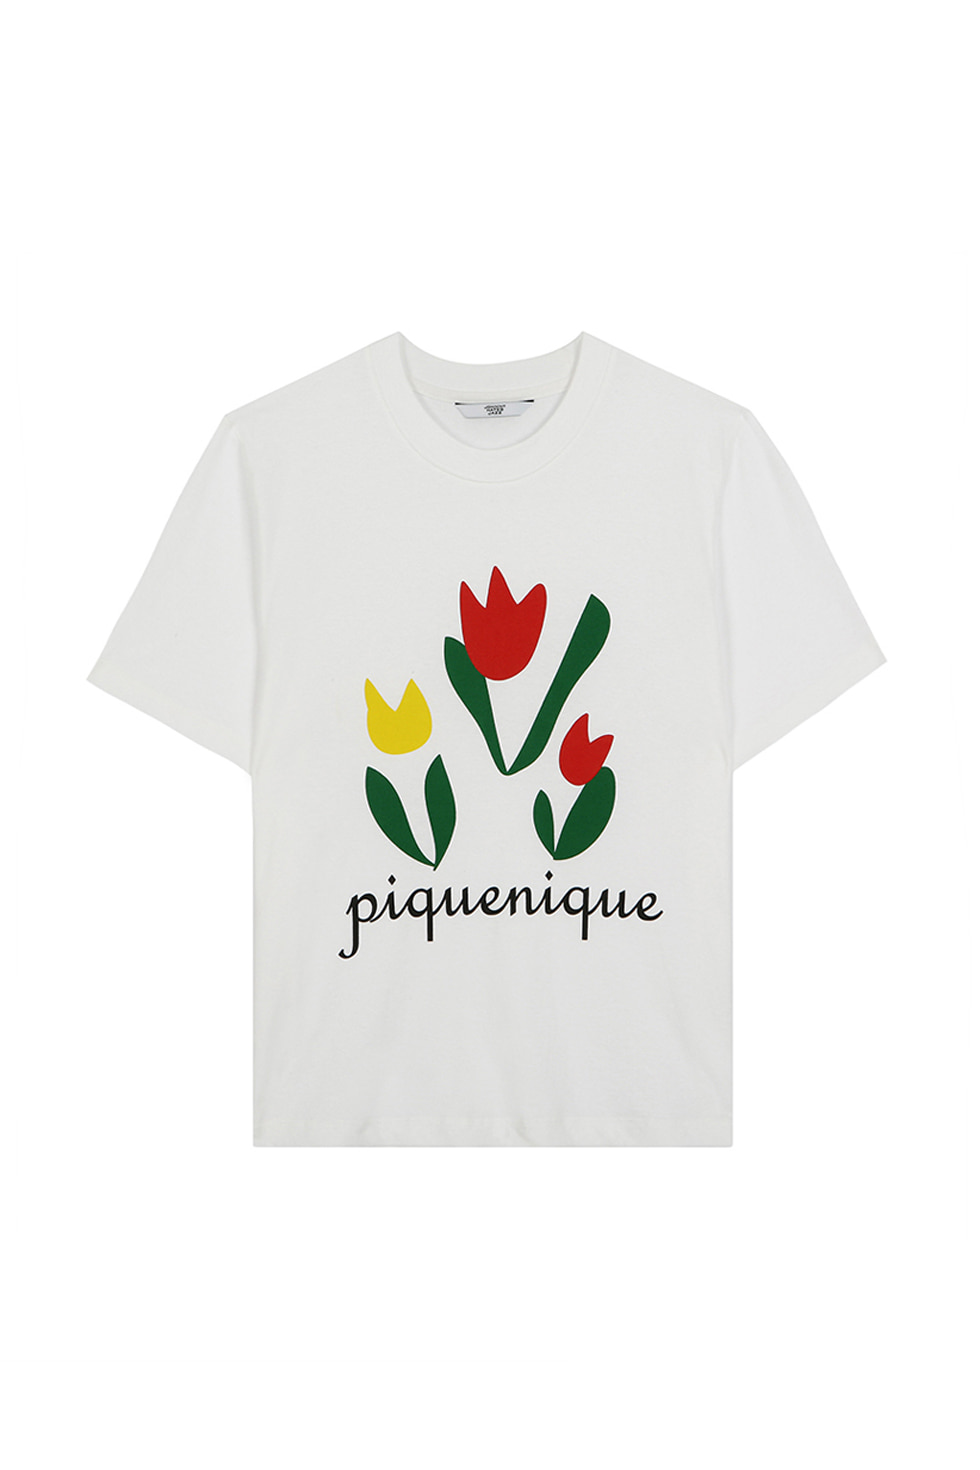 PIQUENIQUE T-SHIRTS - WHITE